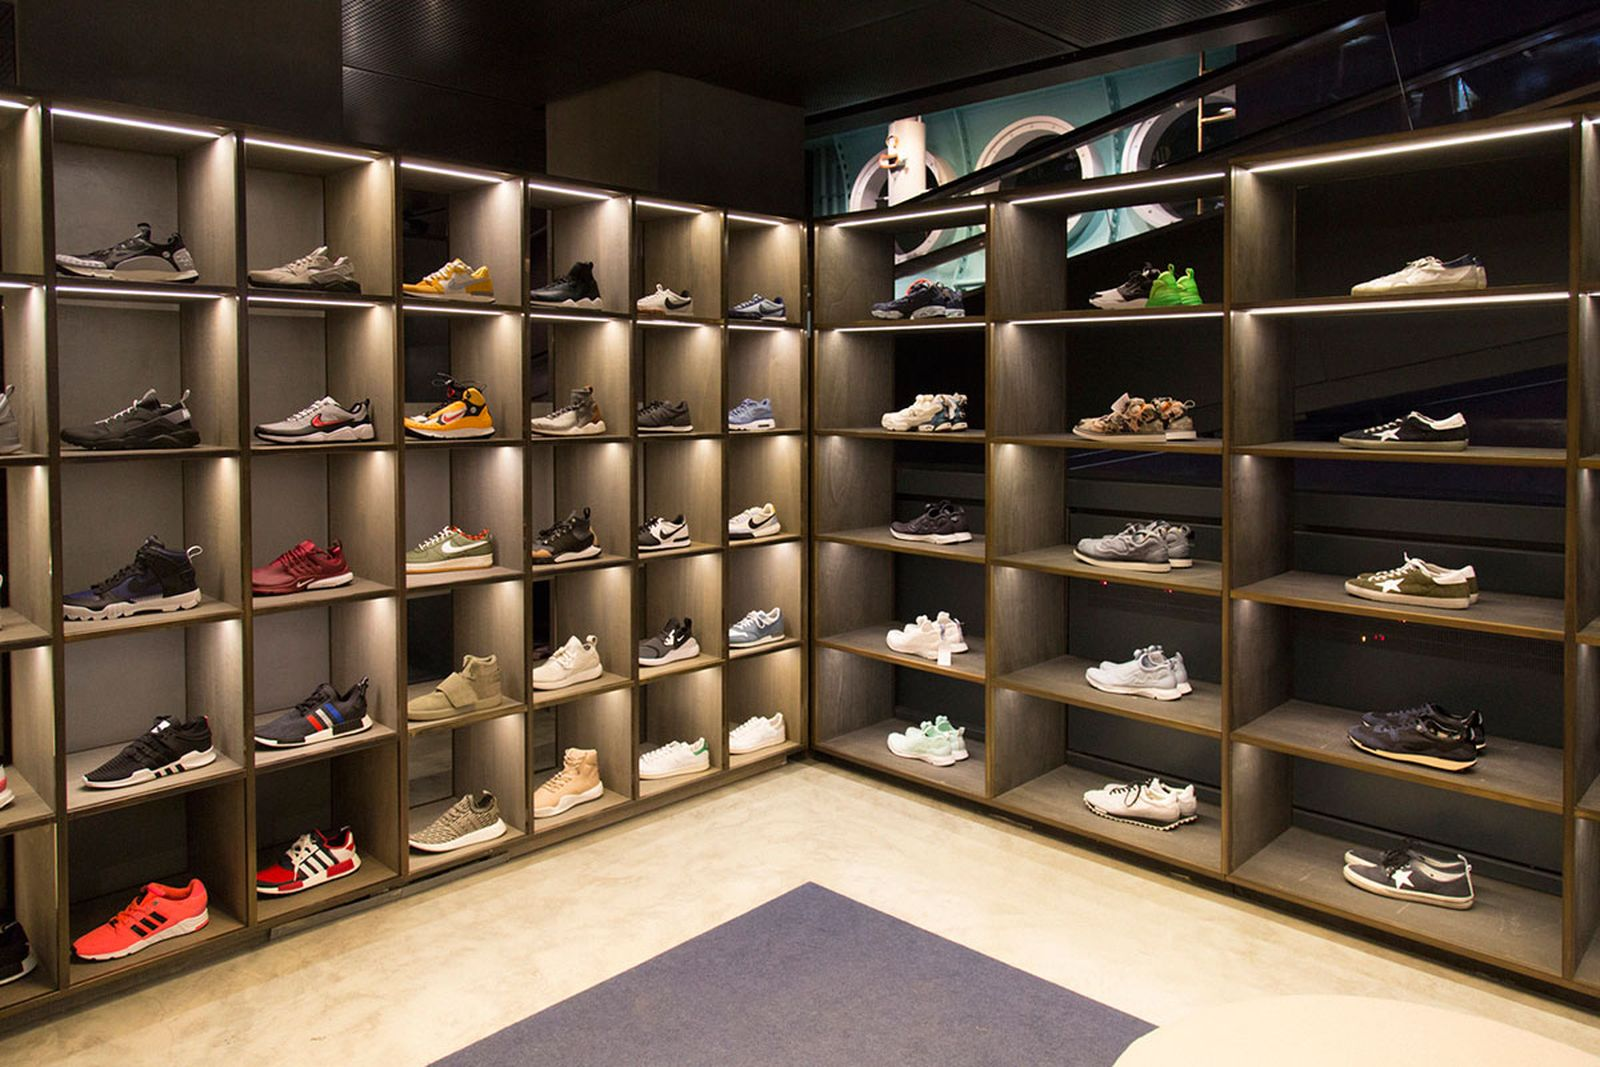 milan-shopping-guide-excelsior-3